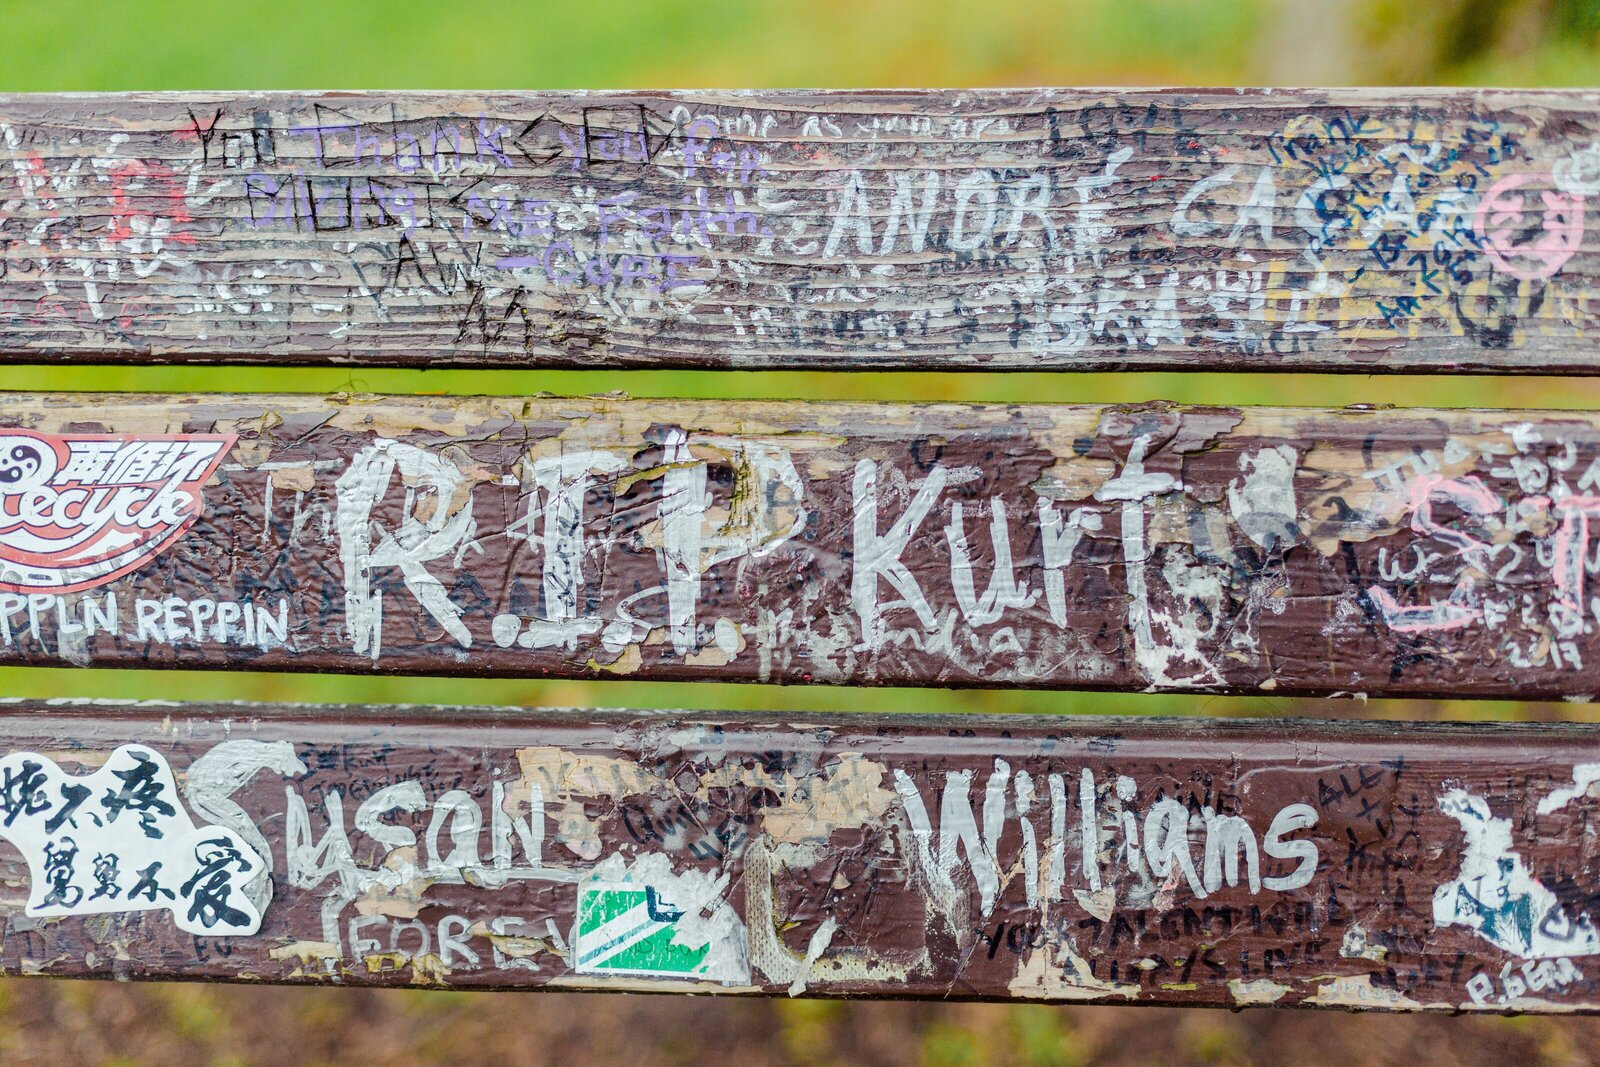 0019-USA-North-America-Seattle-Kurt-Cobain-Bench-0018.JPG